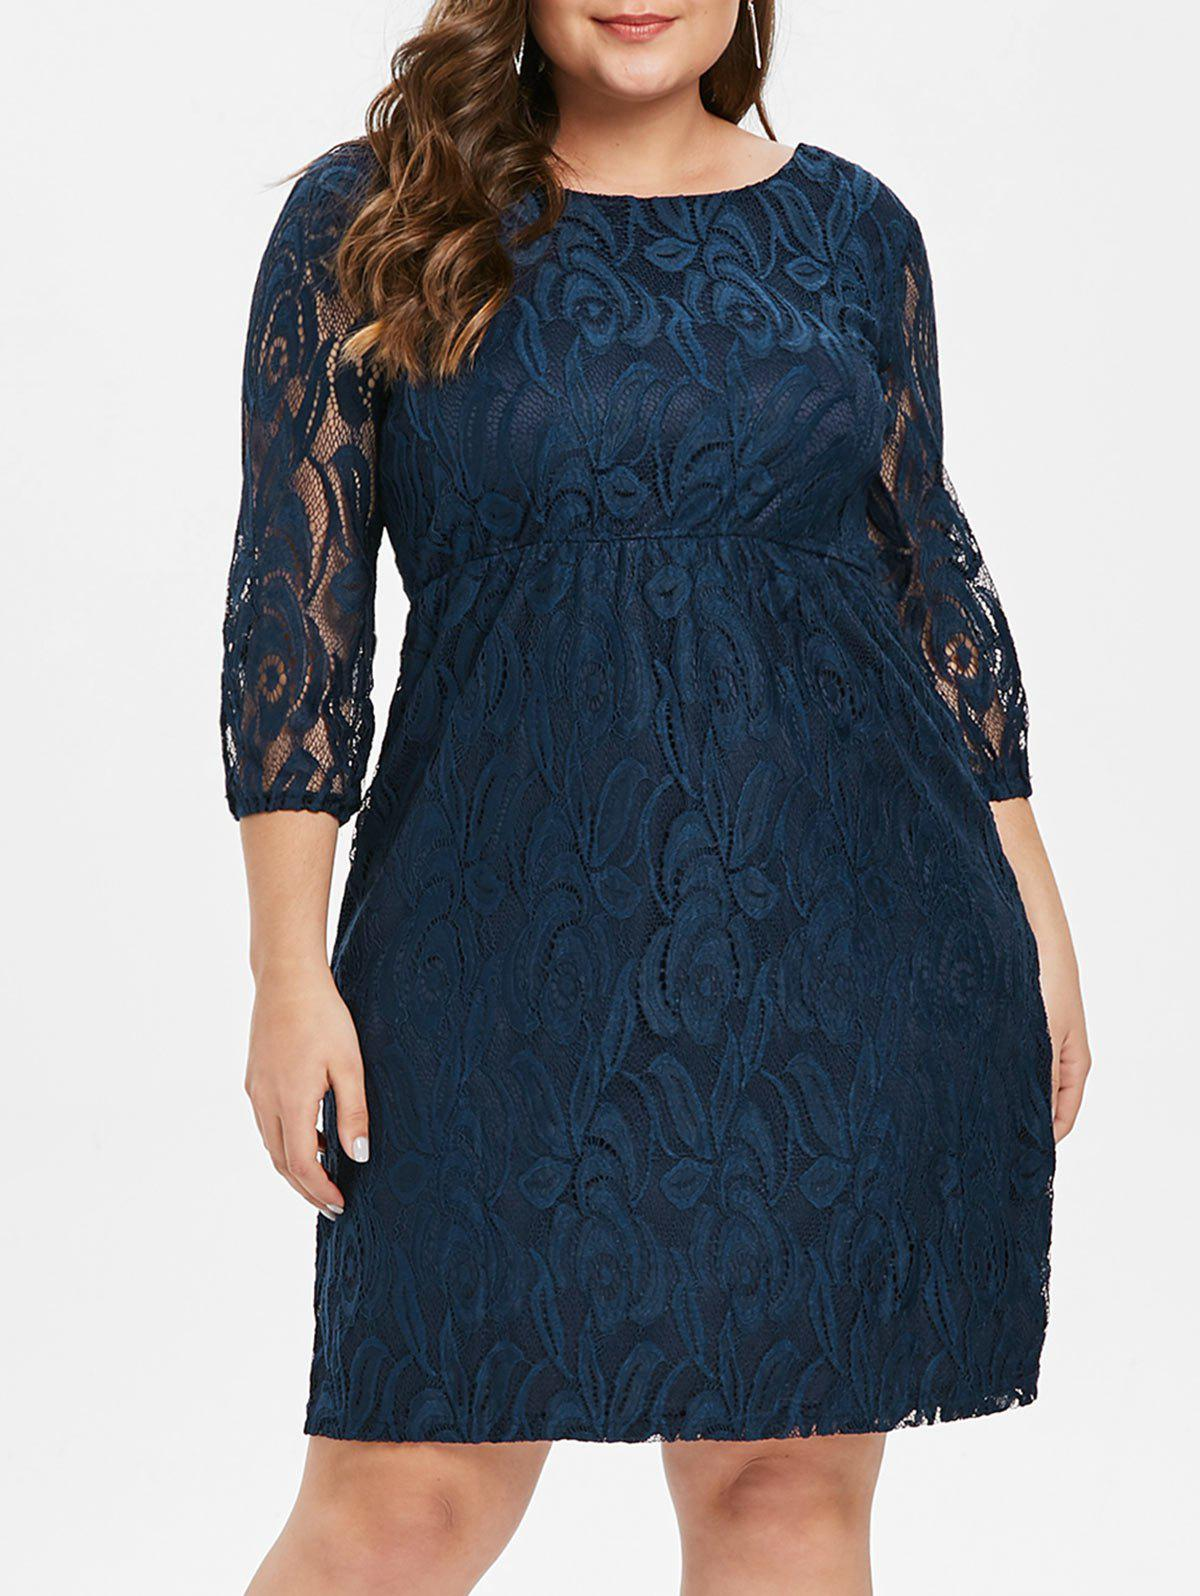 Plus Size Three Quarter Sleeve Lace Dress